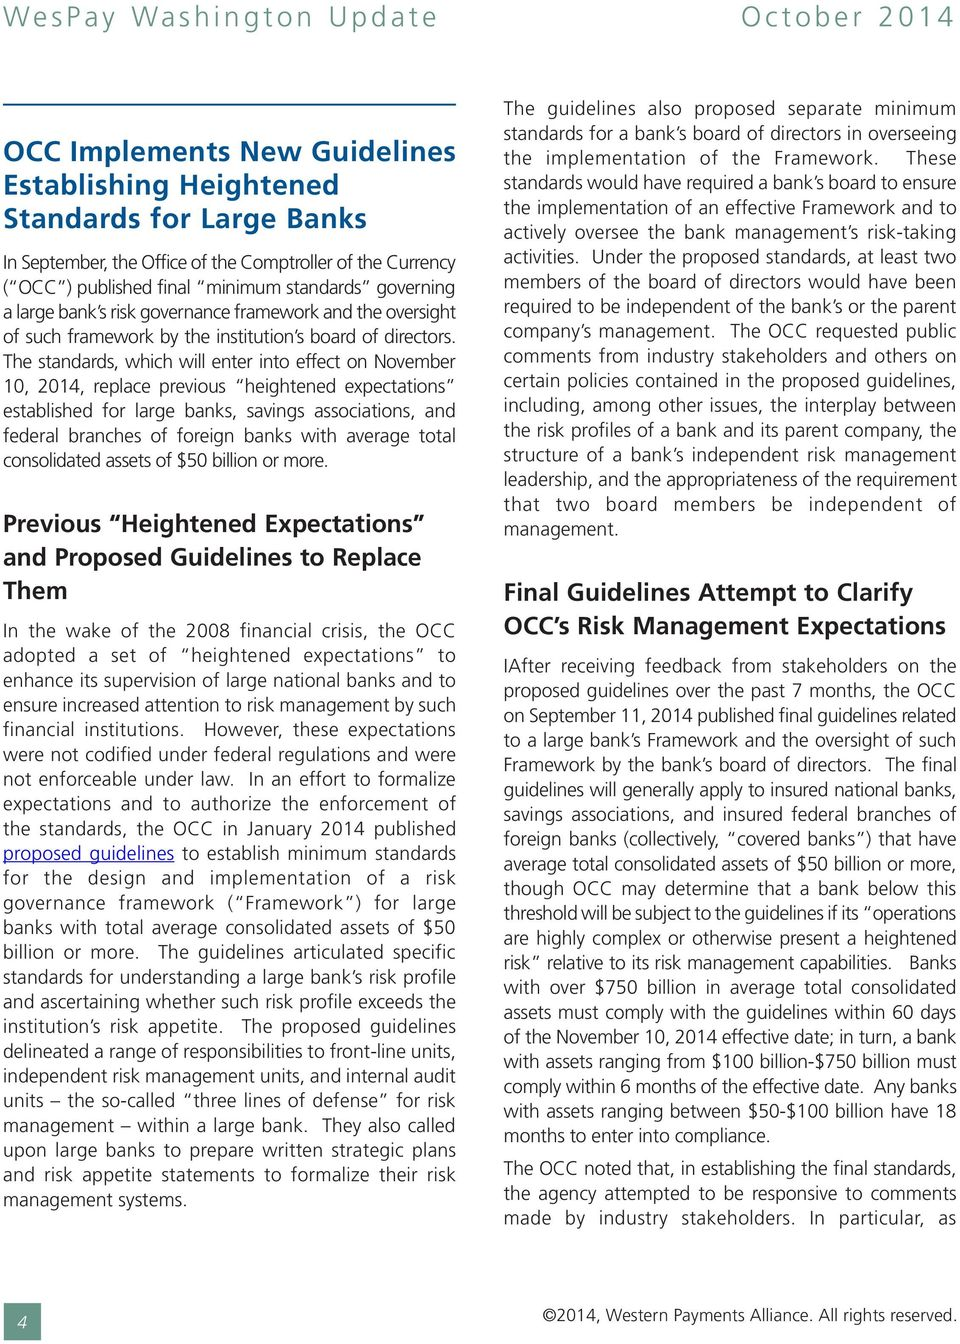 The standards, which will enter into effect on November 10, 2014, replace previous heightened expectations established for large banks, savings associations, and federal branches of foreign banks